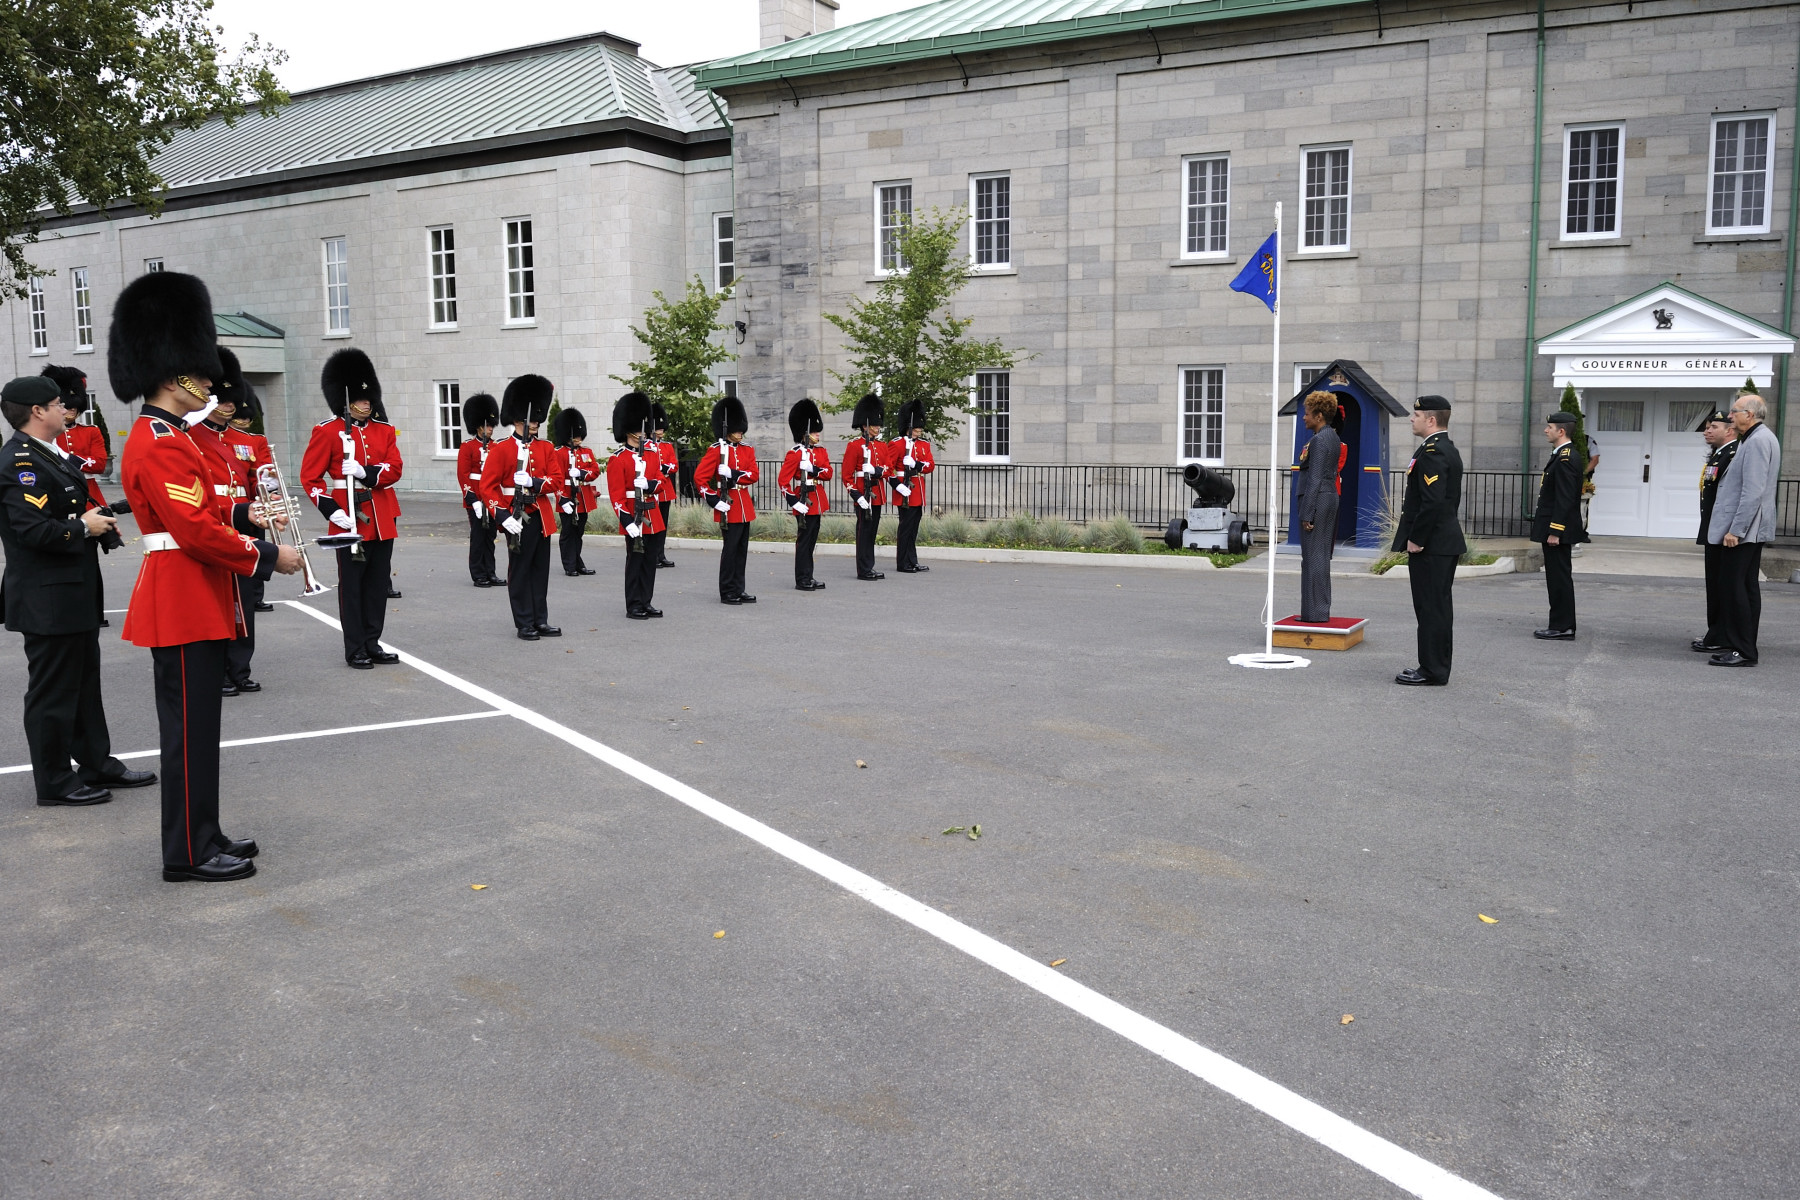 The Governor General also received the Vice-Regal Salute.